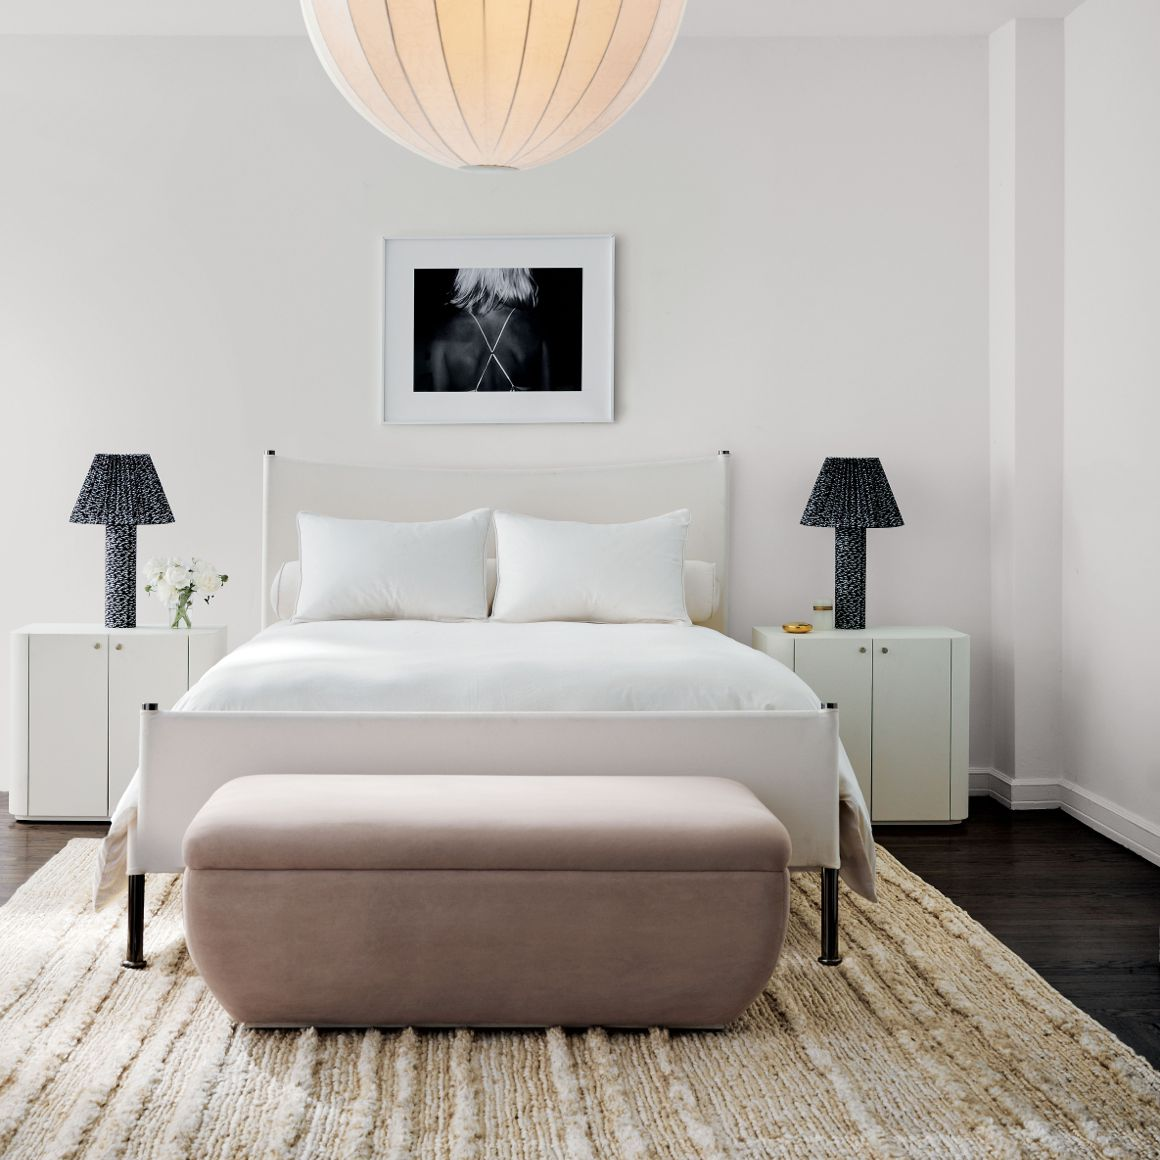 White and light mauve bedroom